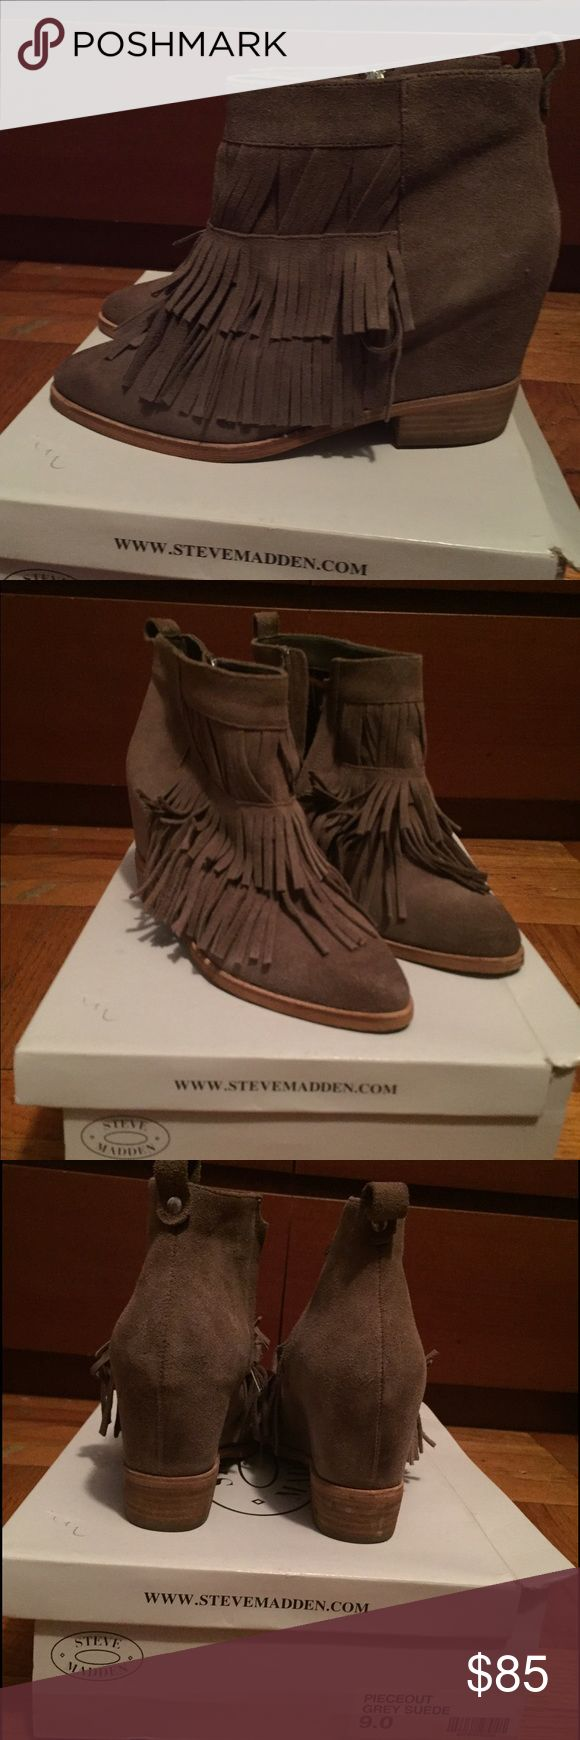 Women's Steve Madden gray suede wedge boots sz 9 Steven maddens gray suede wedge boots with zipper & fringes. Only worn twice, still in great condition Steve Madden Shoes Wedges